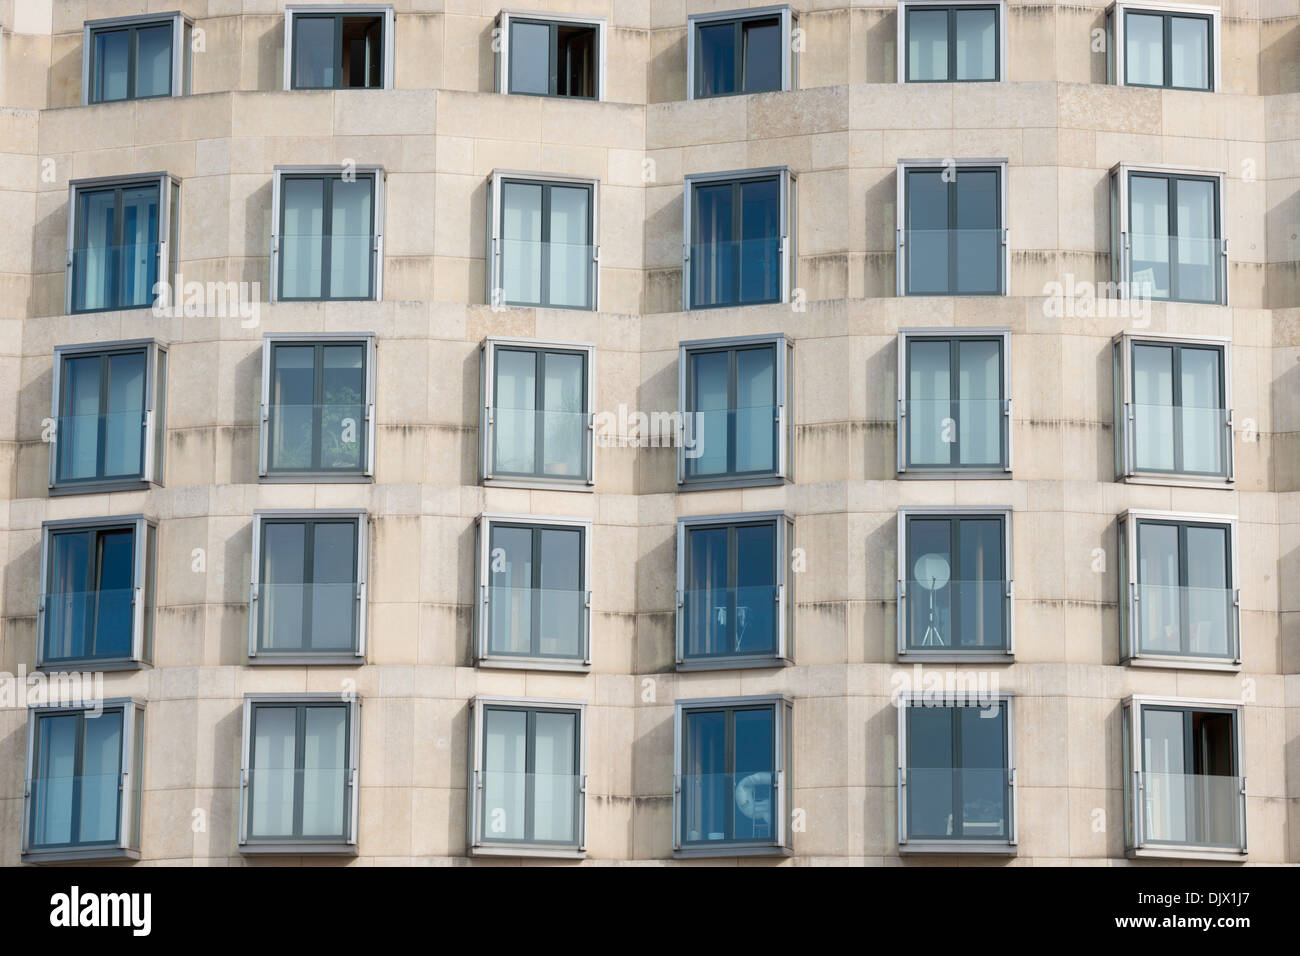 View of the exterior windows of the DZ Bank building in Berlin, Germany. Stock Photo